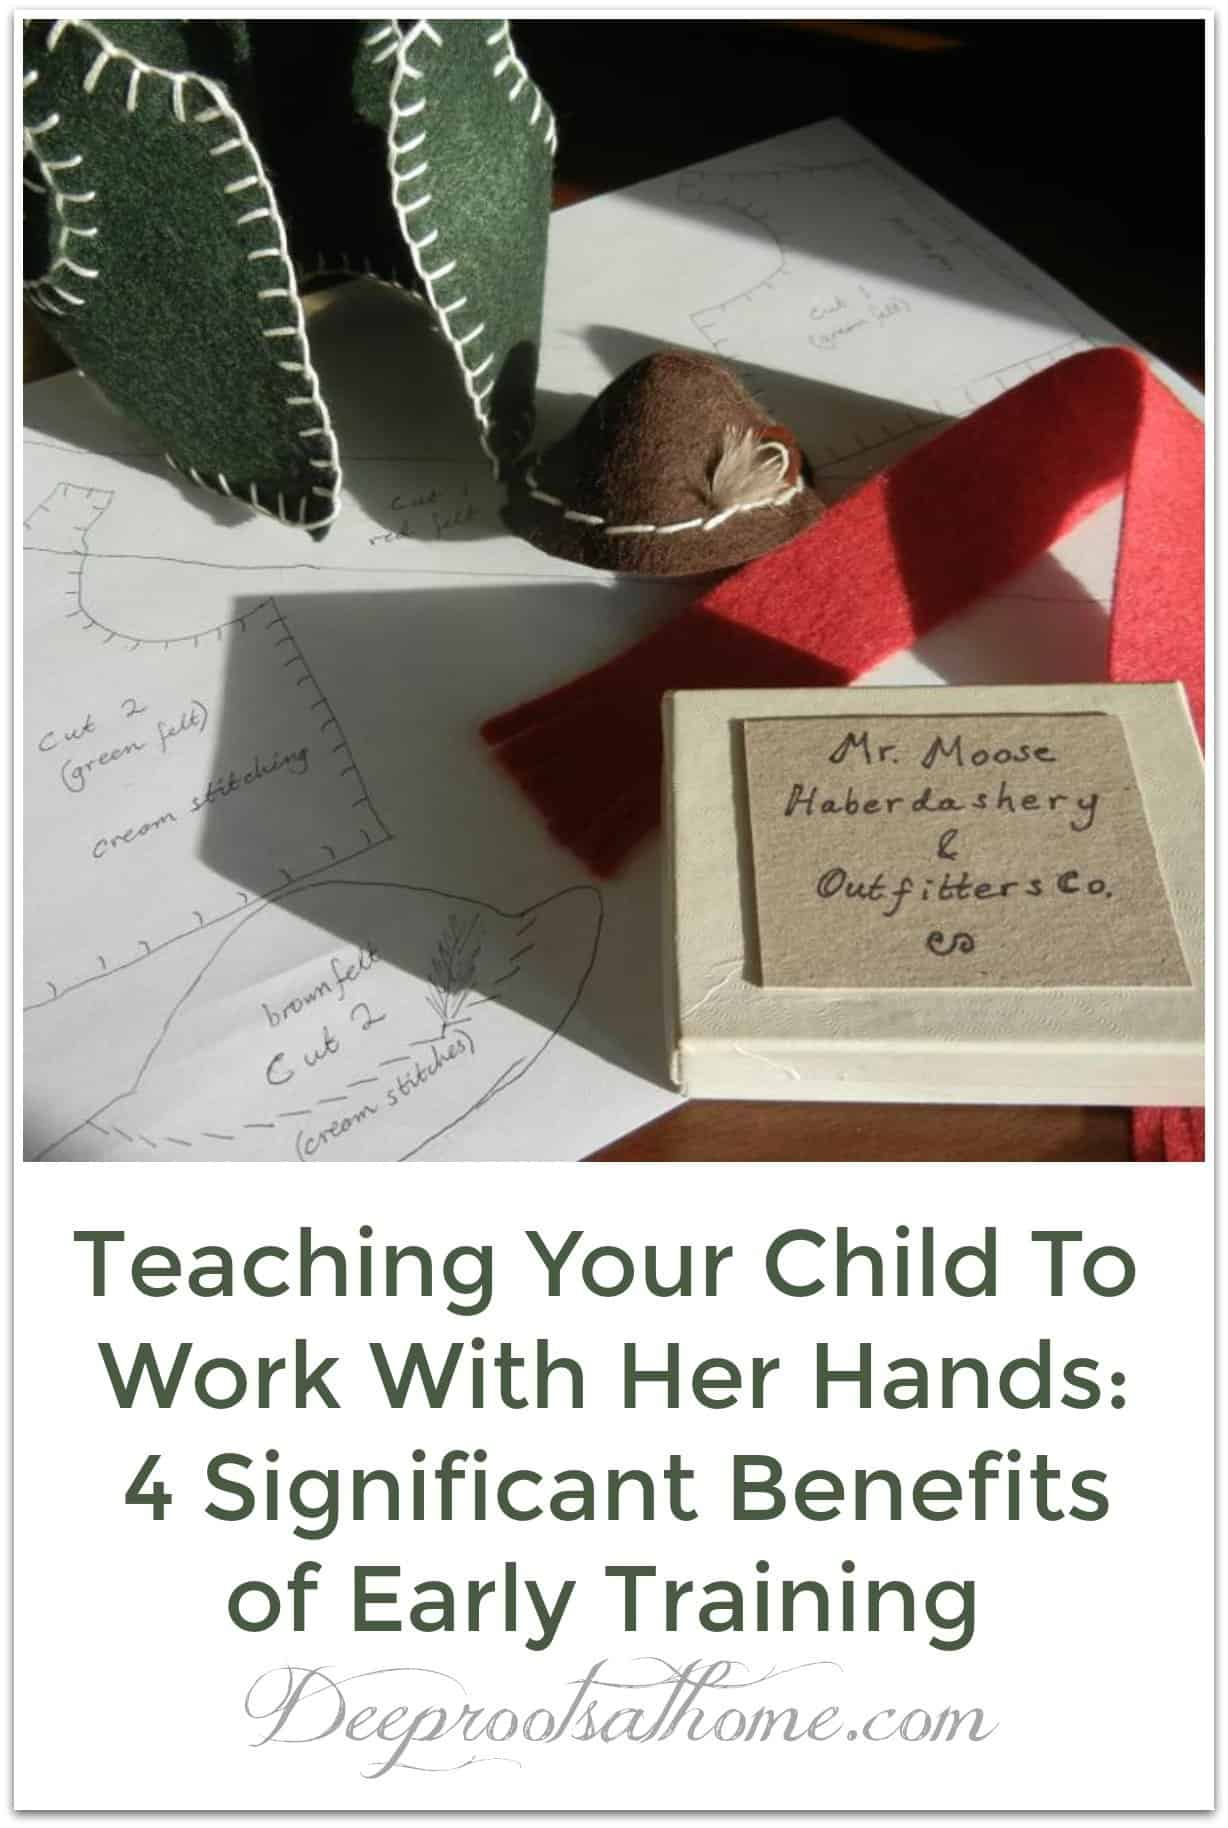 Teaching Your Child To Work With Her Hands: 4 Benefits of Early Training. Drawings for making a wardrobe for a moose as a gift